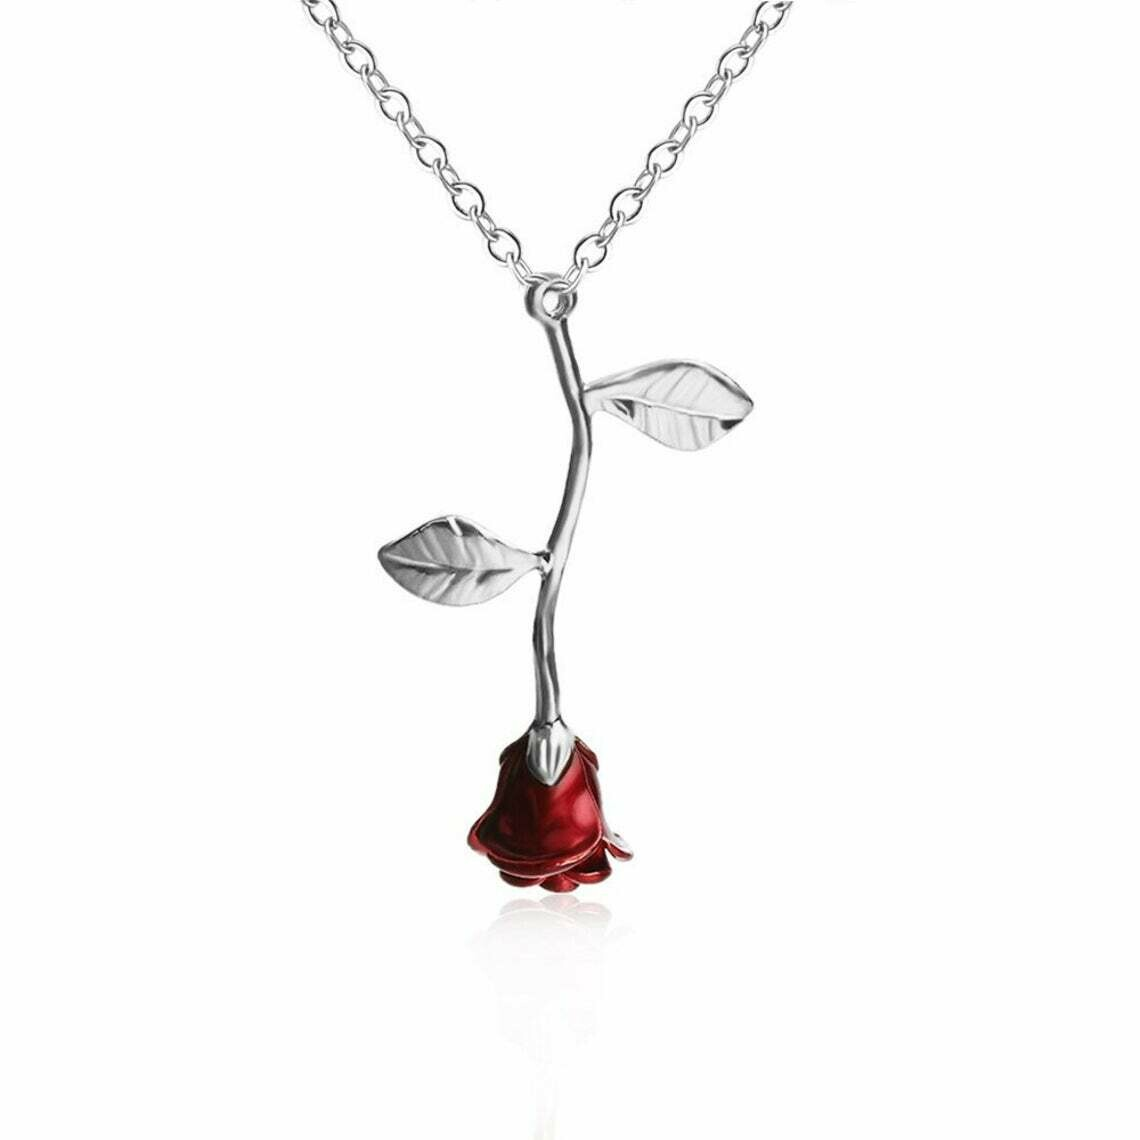 Red Rose Necklace Silver Chain